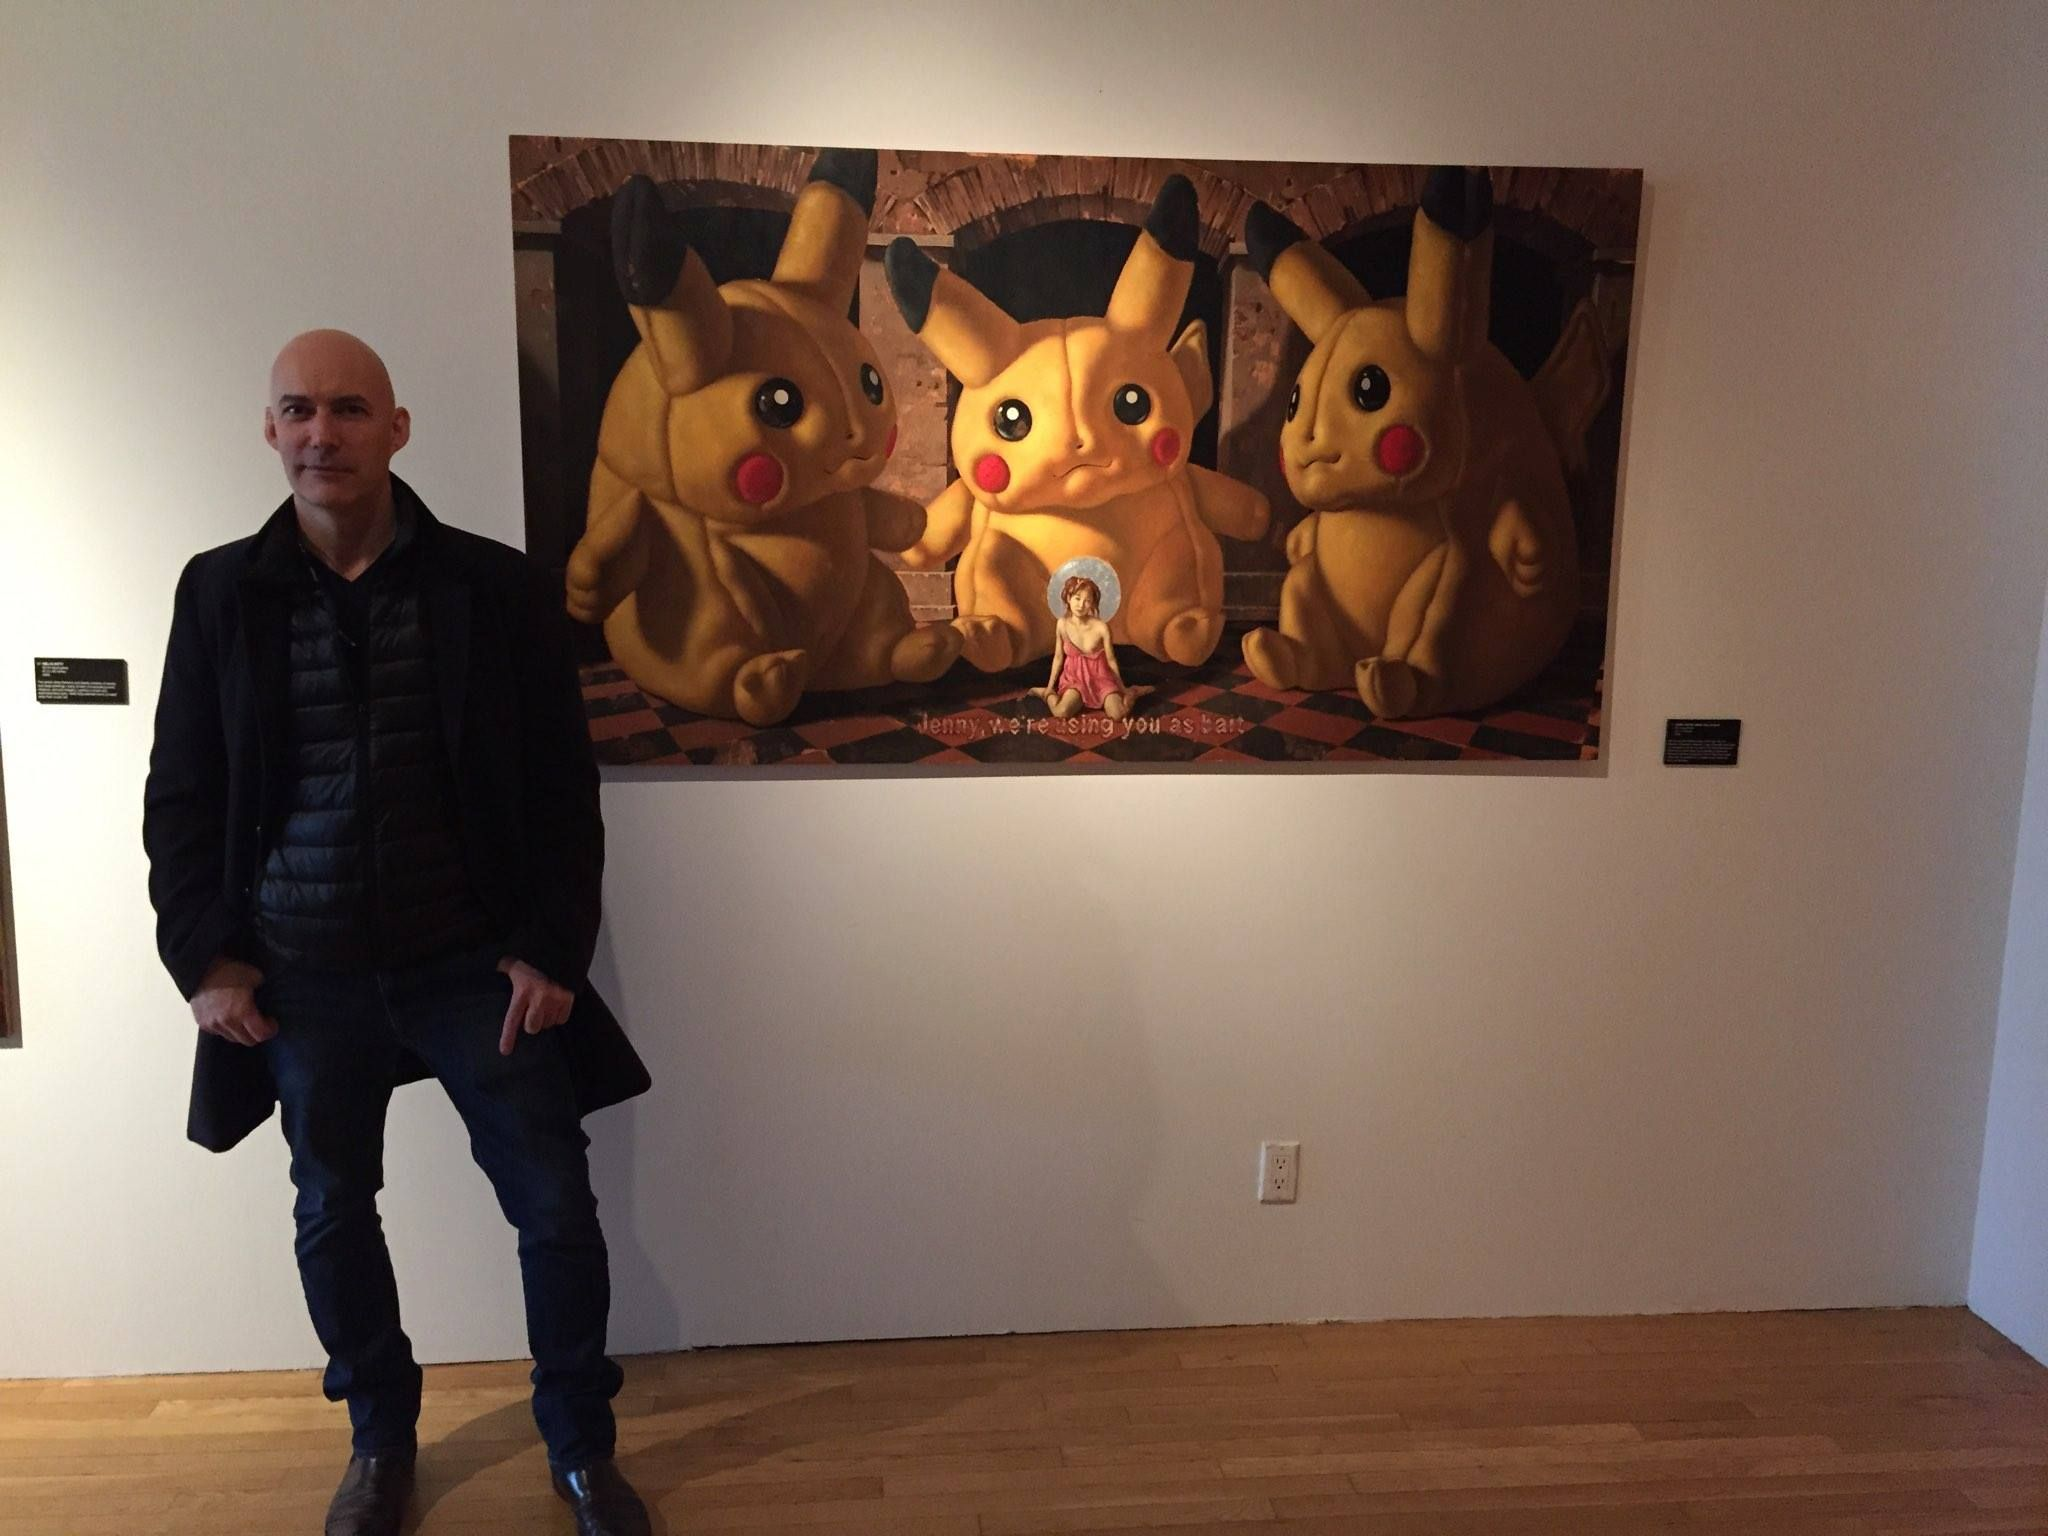 """Artist John Wellington at his solo New York exhibition celebrating 30 years of his amazing paintings. This is John with the his Pikachu painting """"Jenny, We're Using You As Bait."""" Full size print available at ObsessionArt - http://goo.gl/xdRbWR"""